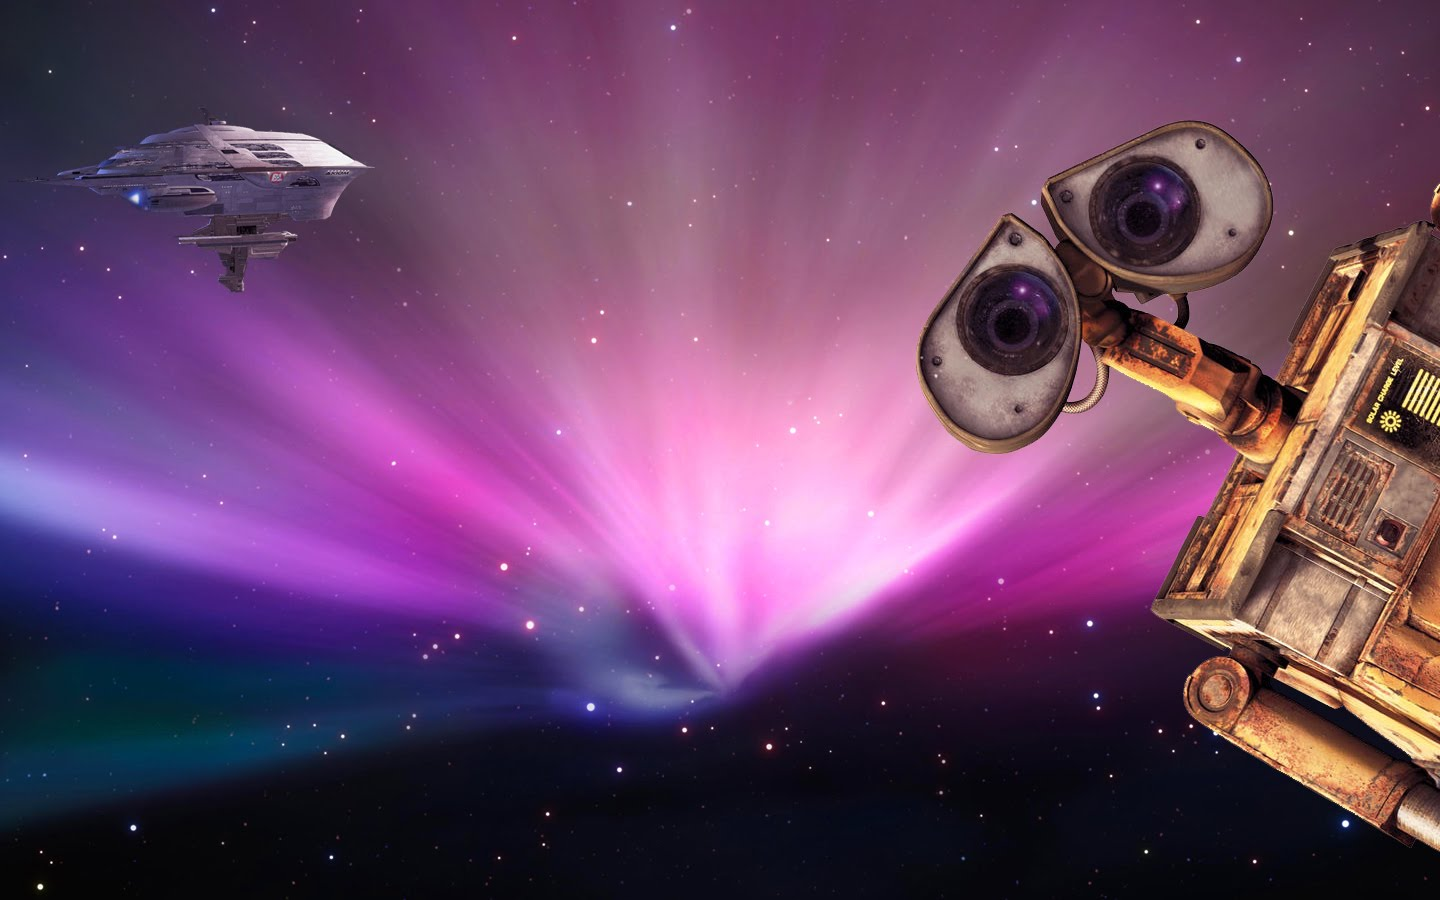 Cute Hd Wallpapers 1080p Widescreen Walle 171 Awesome Wallpapers